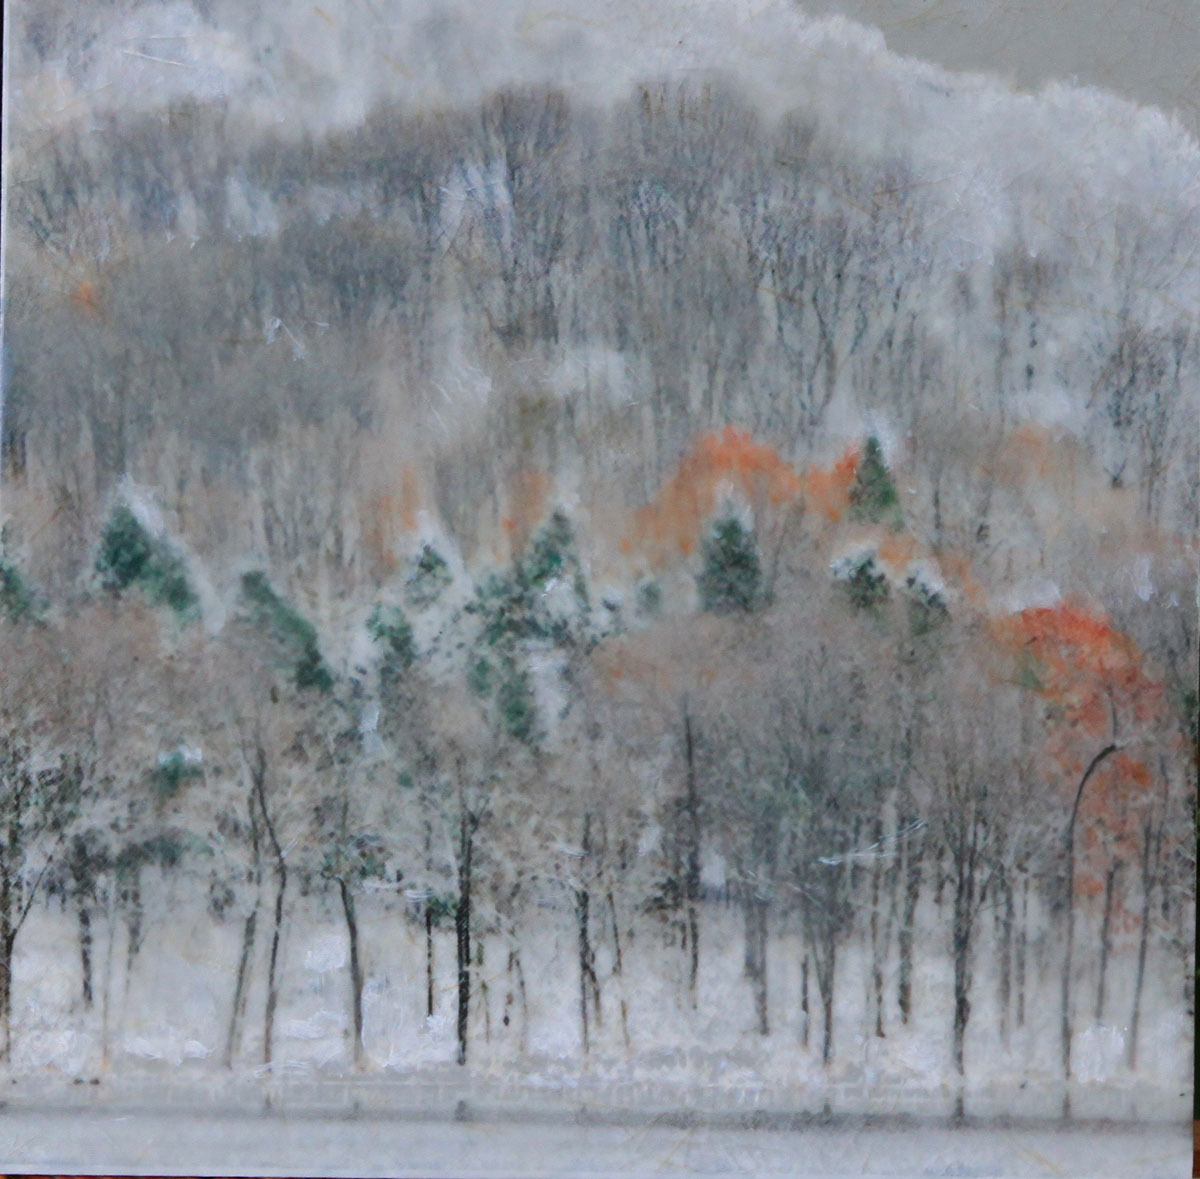 Radnor Snow II (large view)